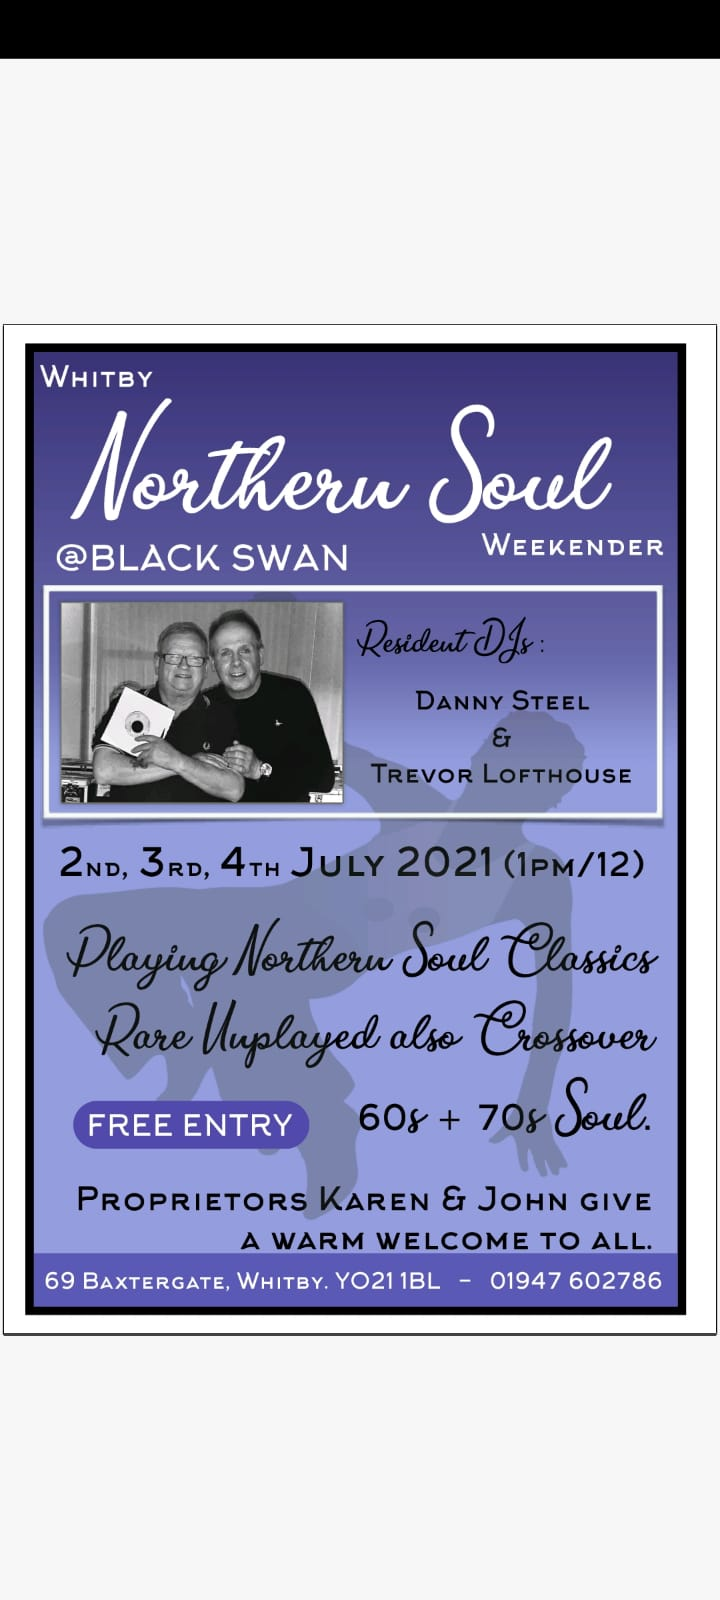 Whitby Northern Soul  At The Black Swan Cancelled flyer